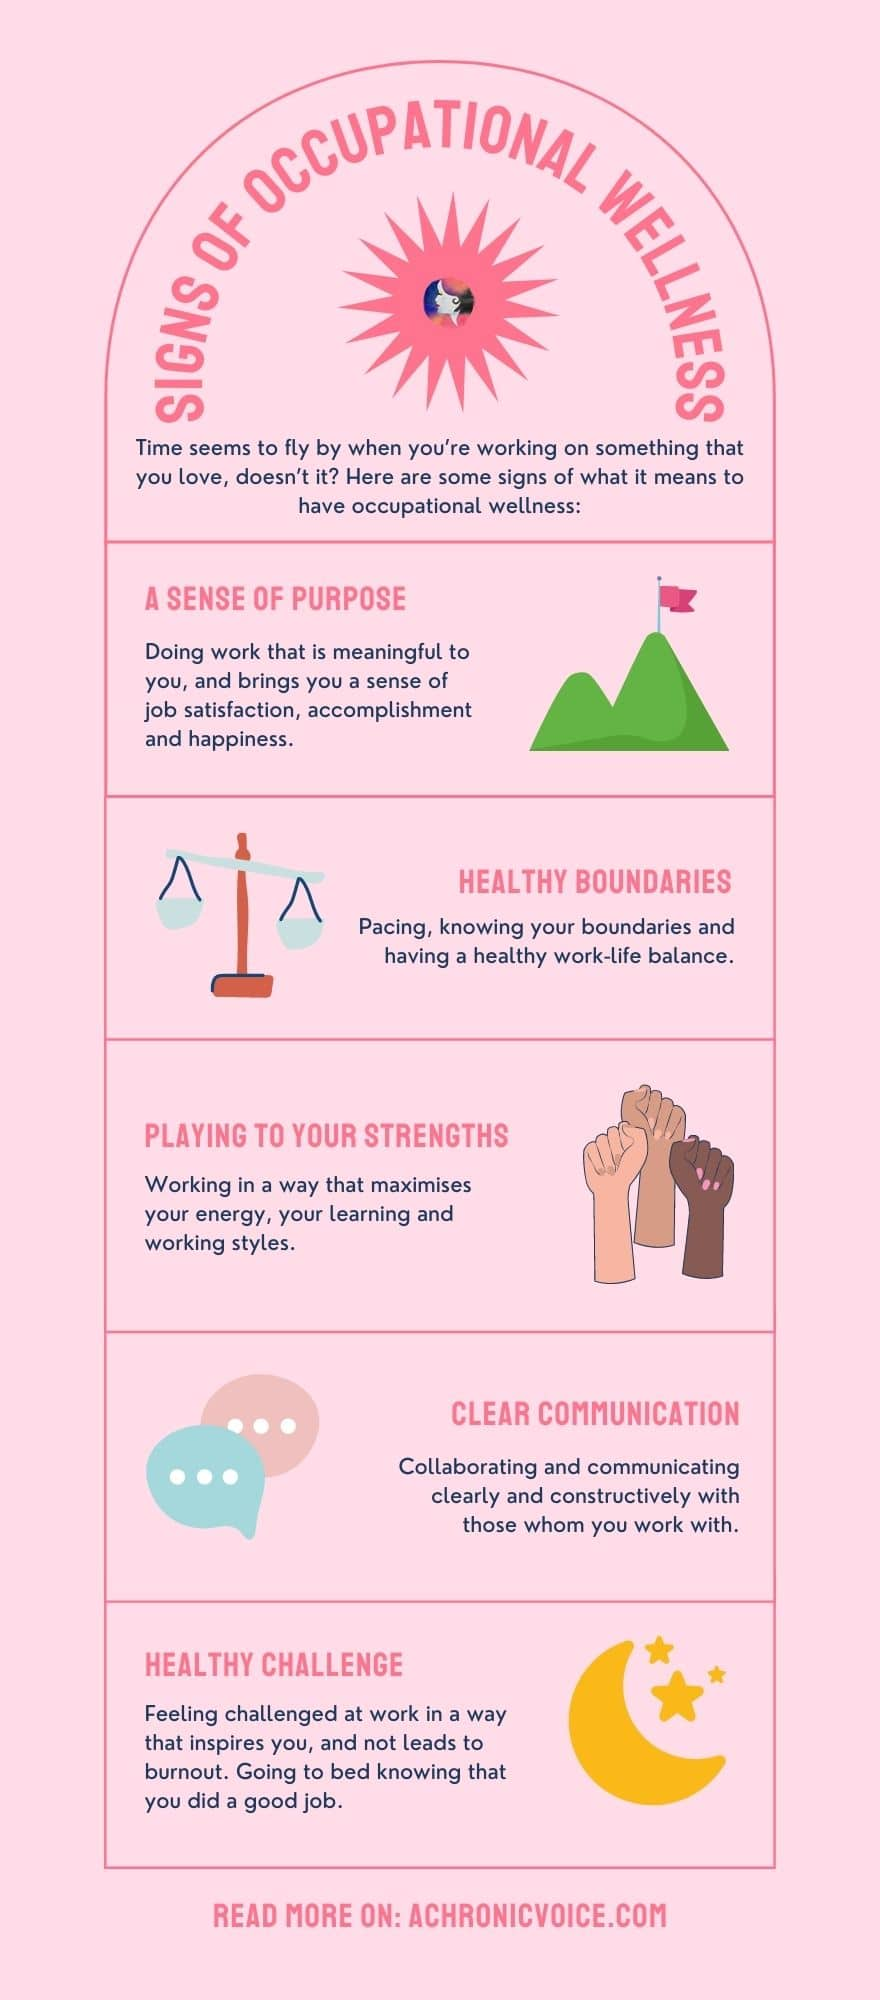 Signs of Occupational Wellness Infographic